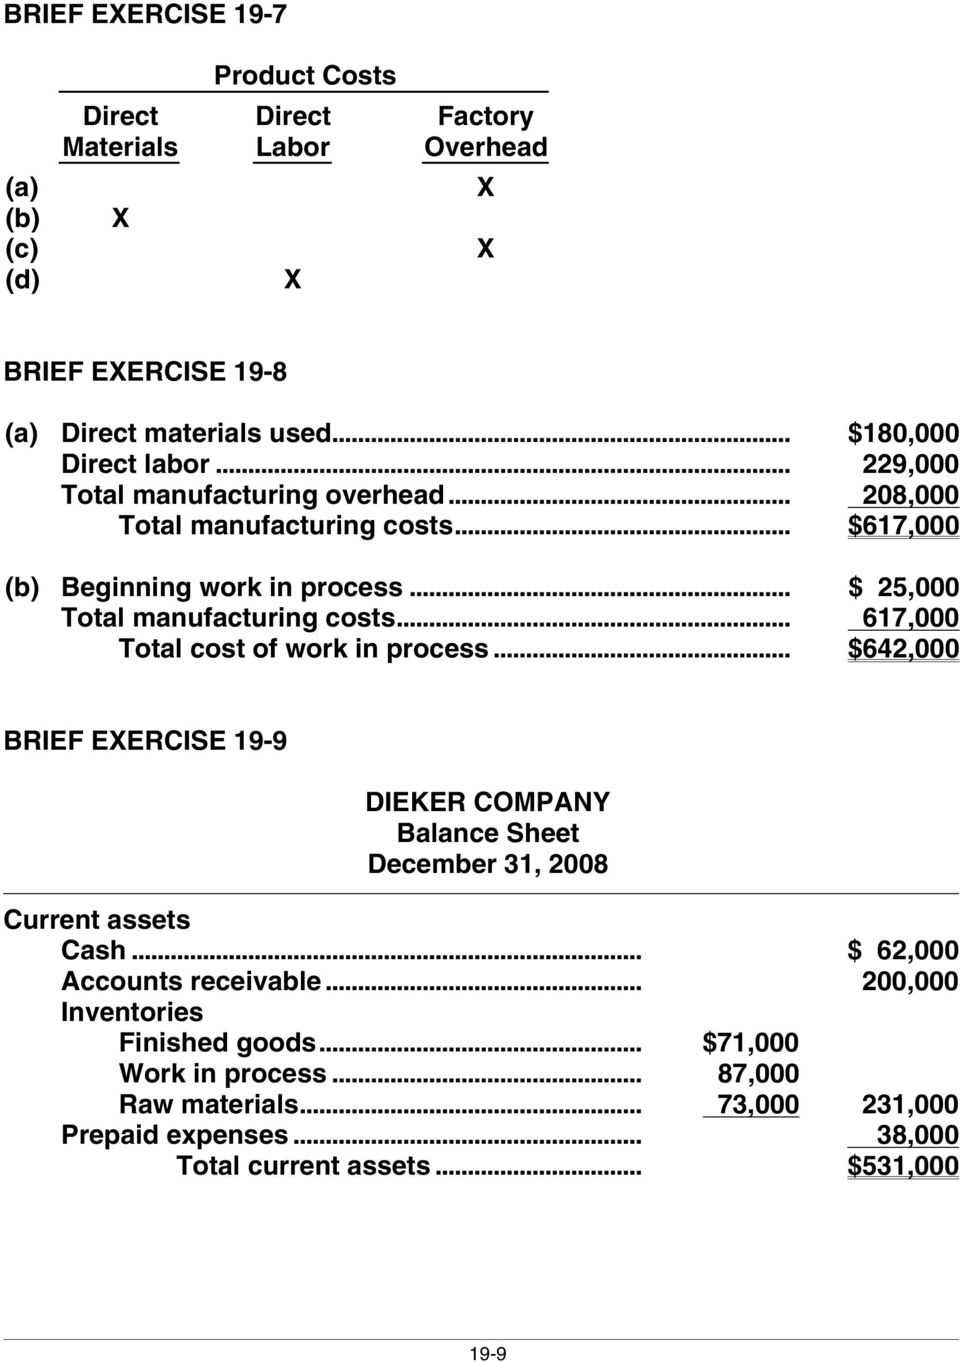 Chapter 19 managerial accounting brief 1 2 5 6 7 2 3 10 11 25000 total manufacturing costs 617000 total cost of work in fandeluxe Choice Image